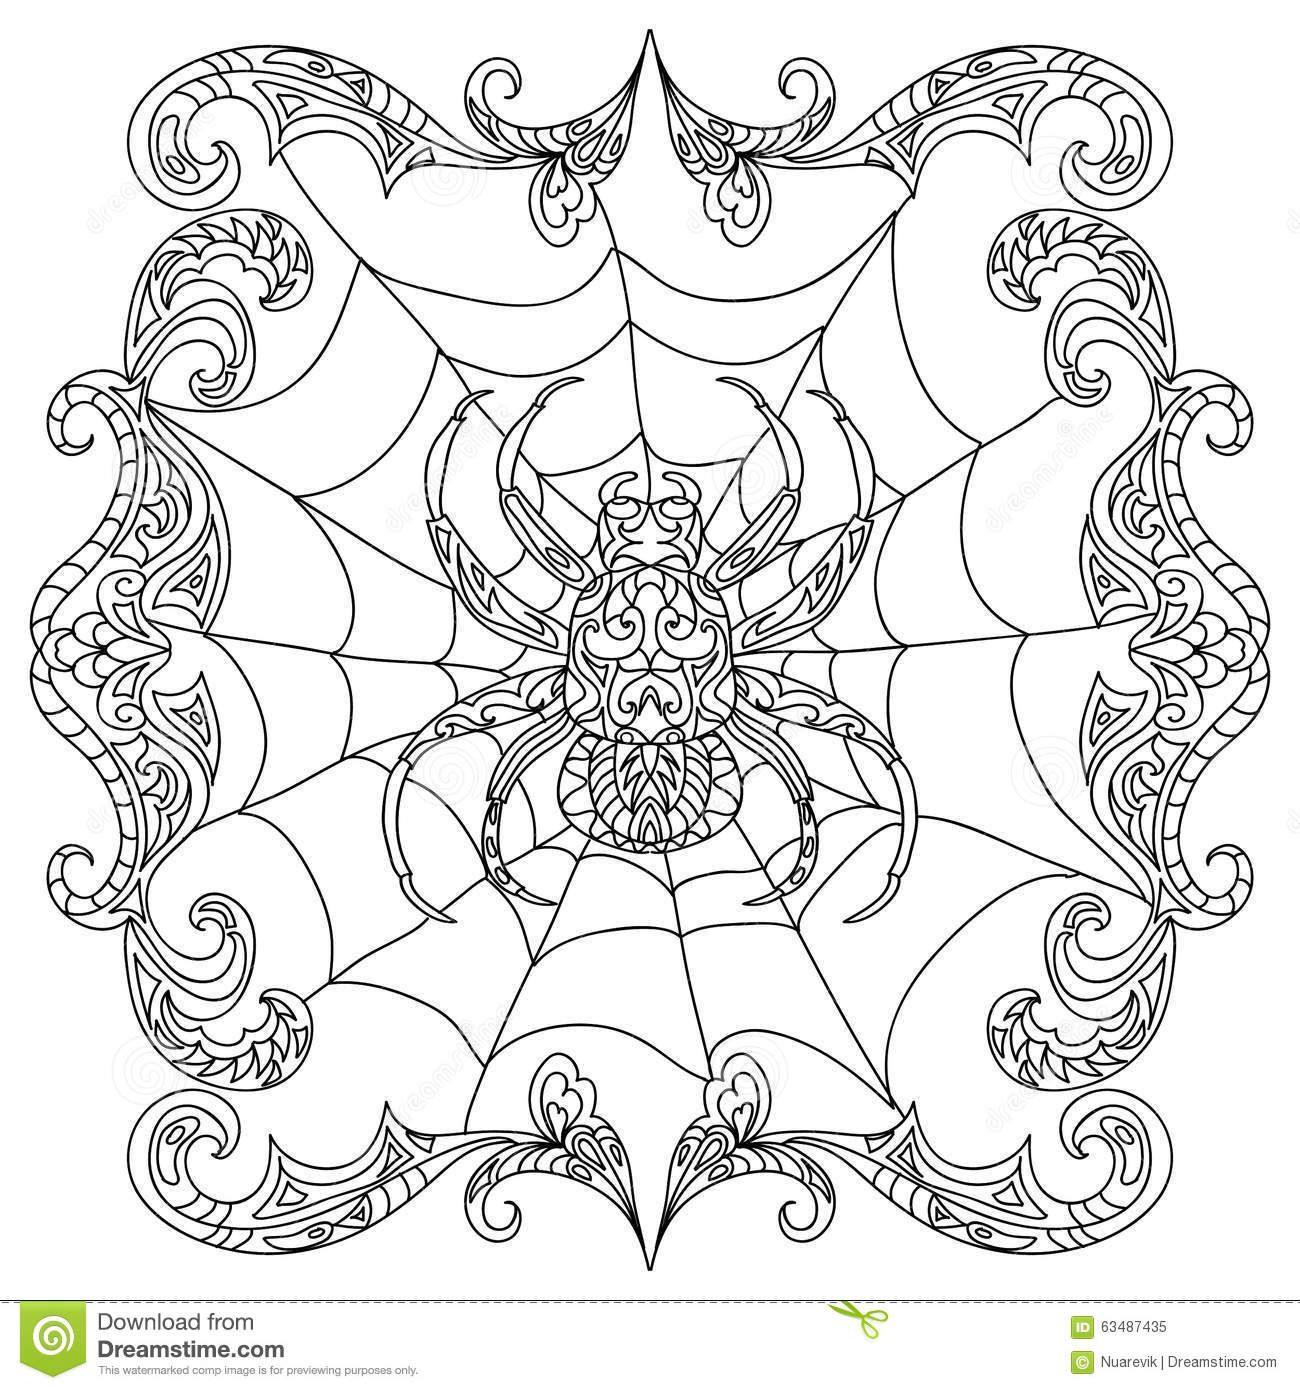 Spider Halloween Party Coloring Pages - Worksheet & Coloring Pages